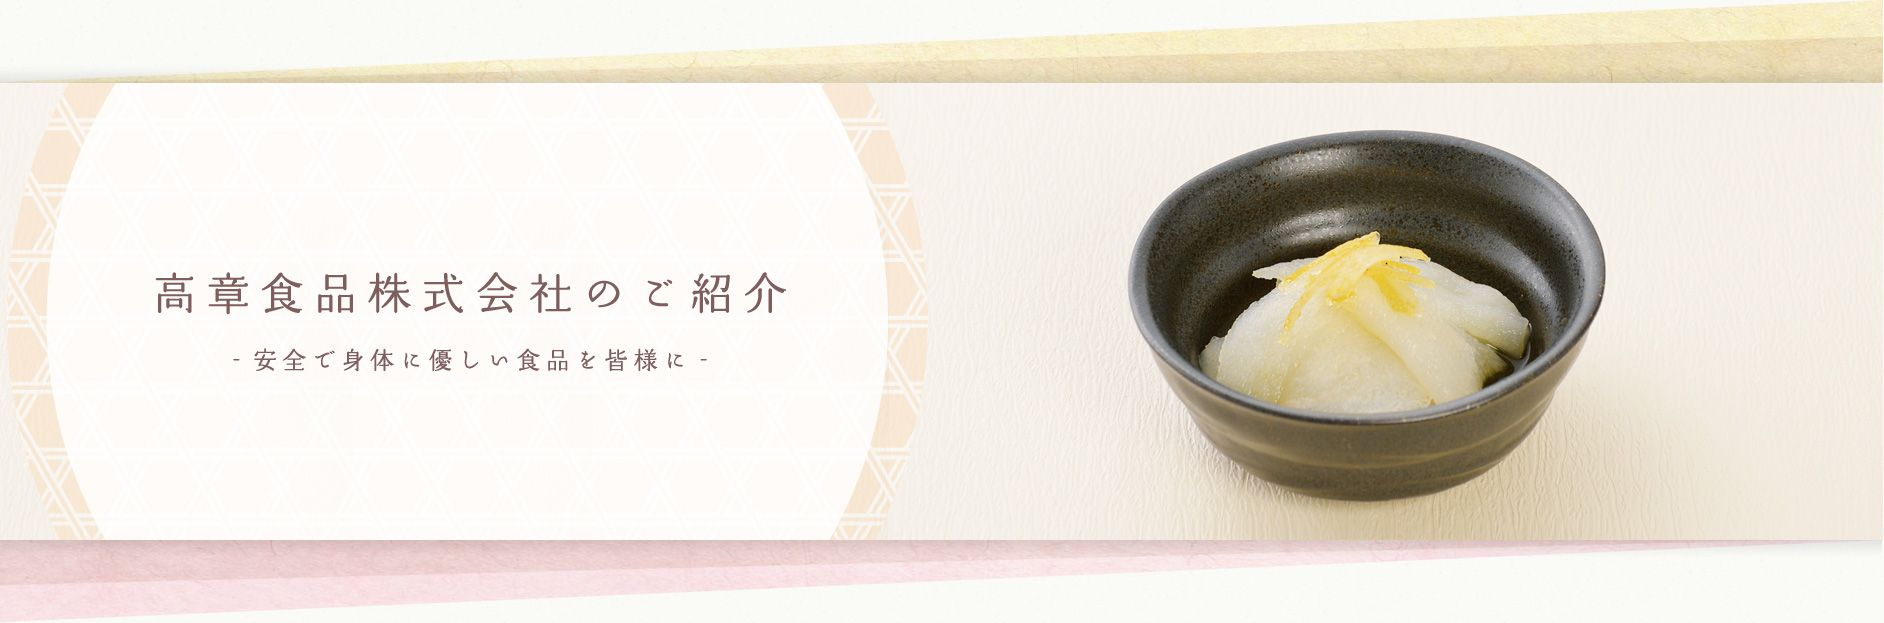 Introduction of Takaaki Foods Co., Ltd.